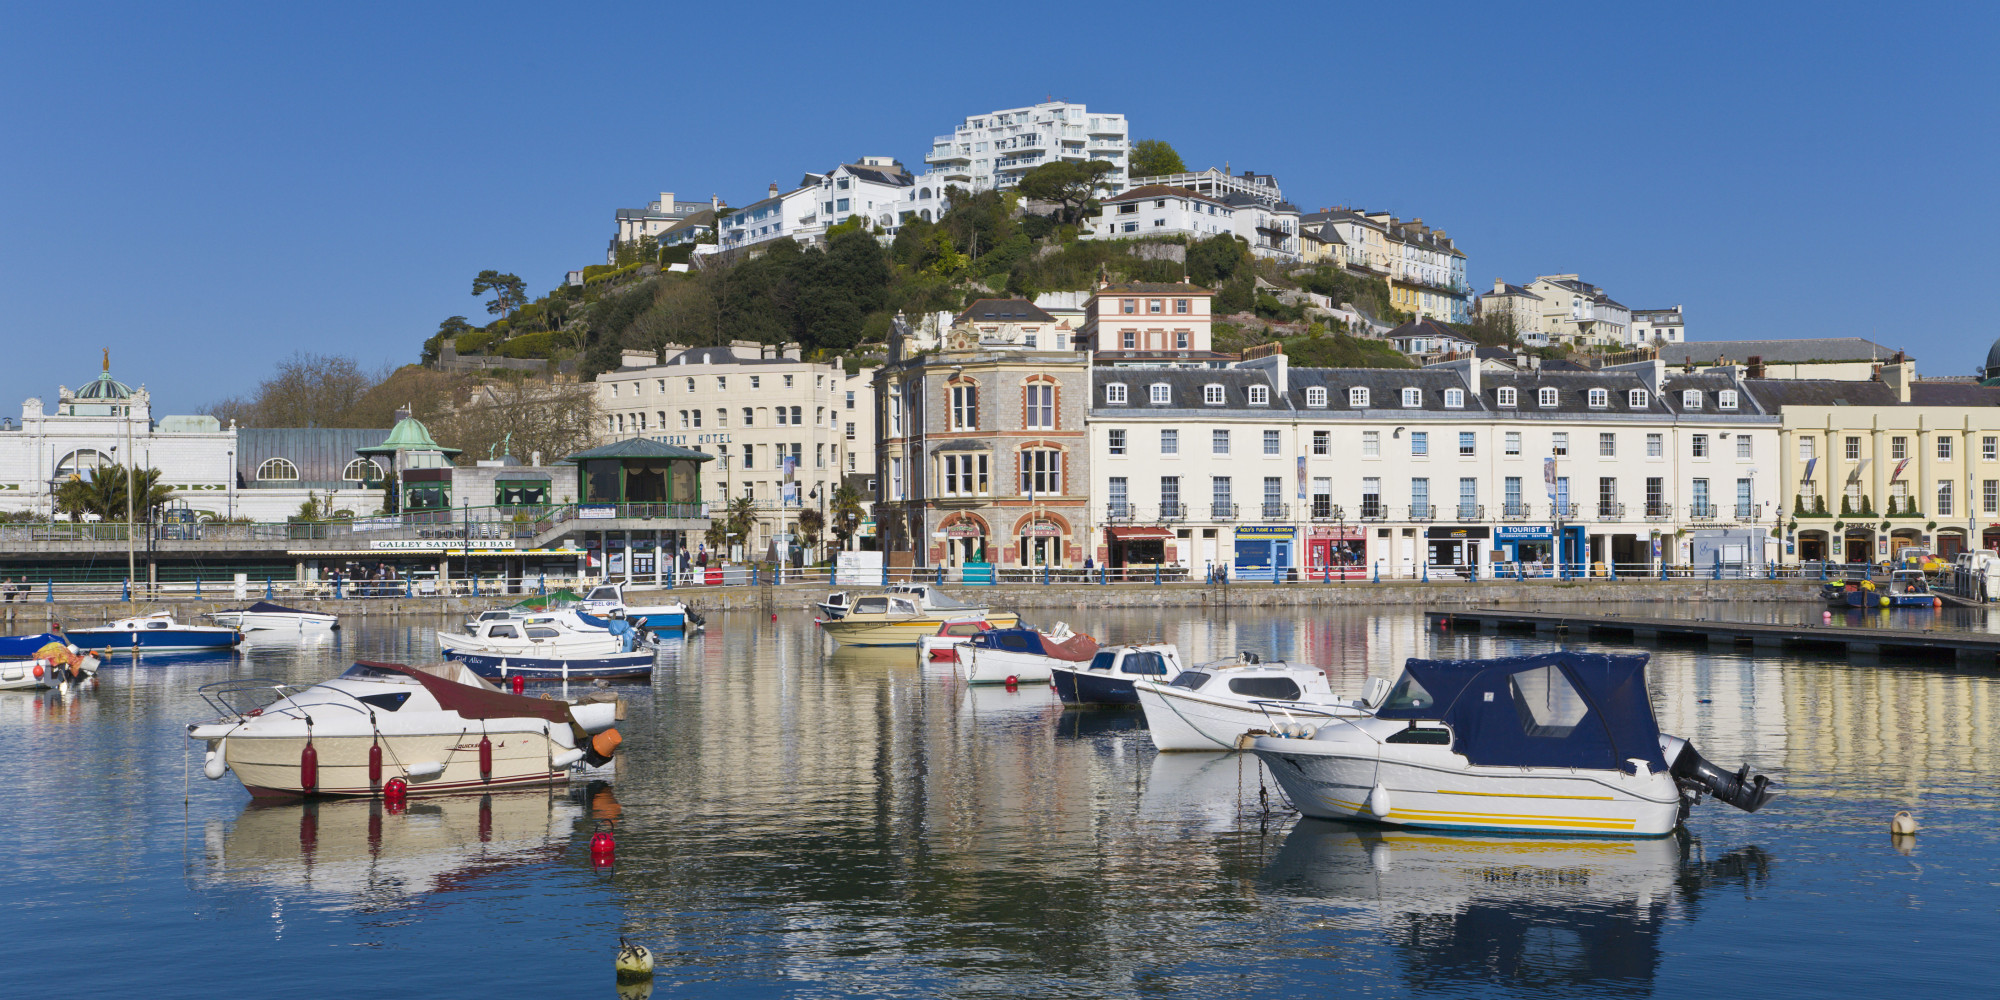 Torquay Cafes And Restaurants